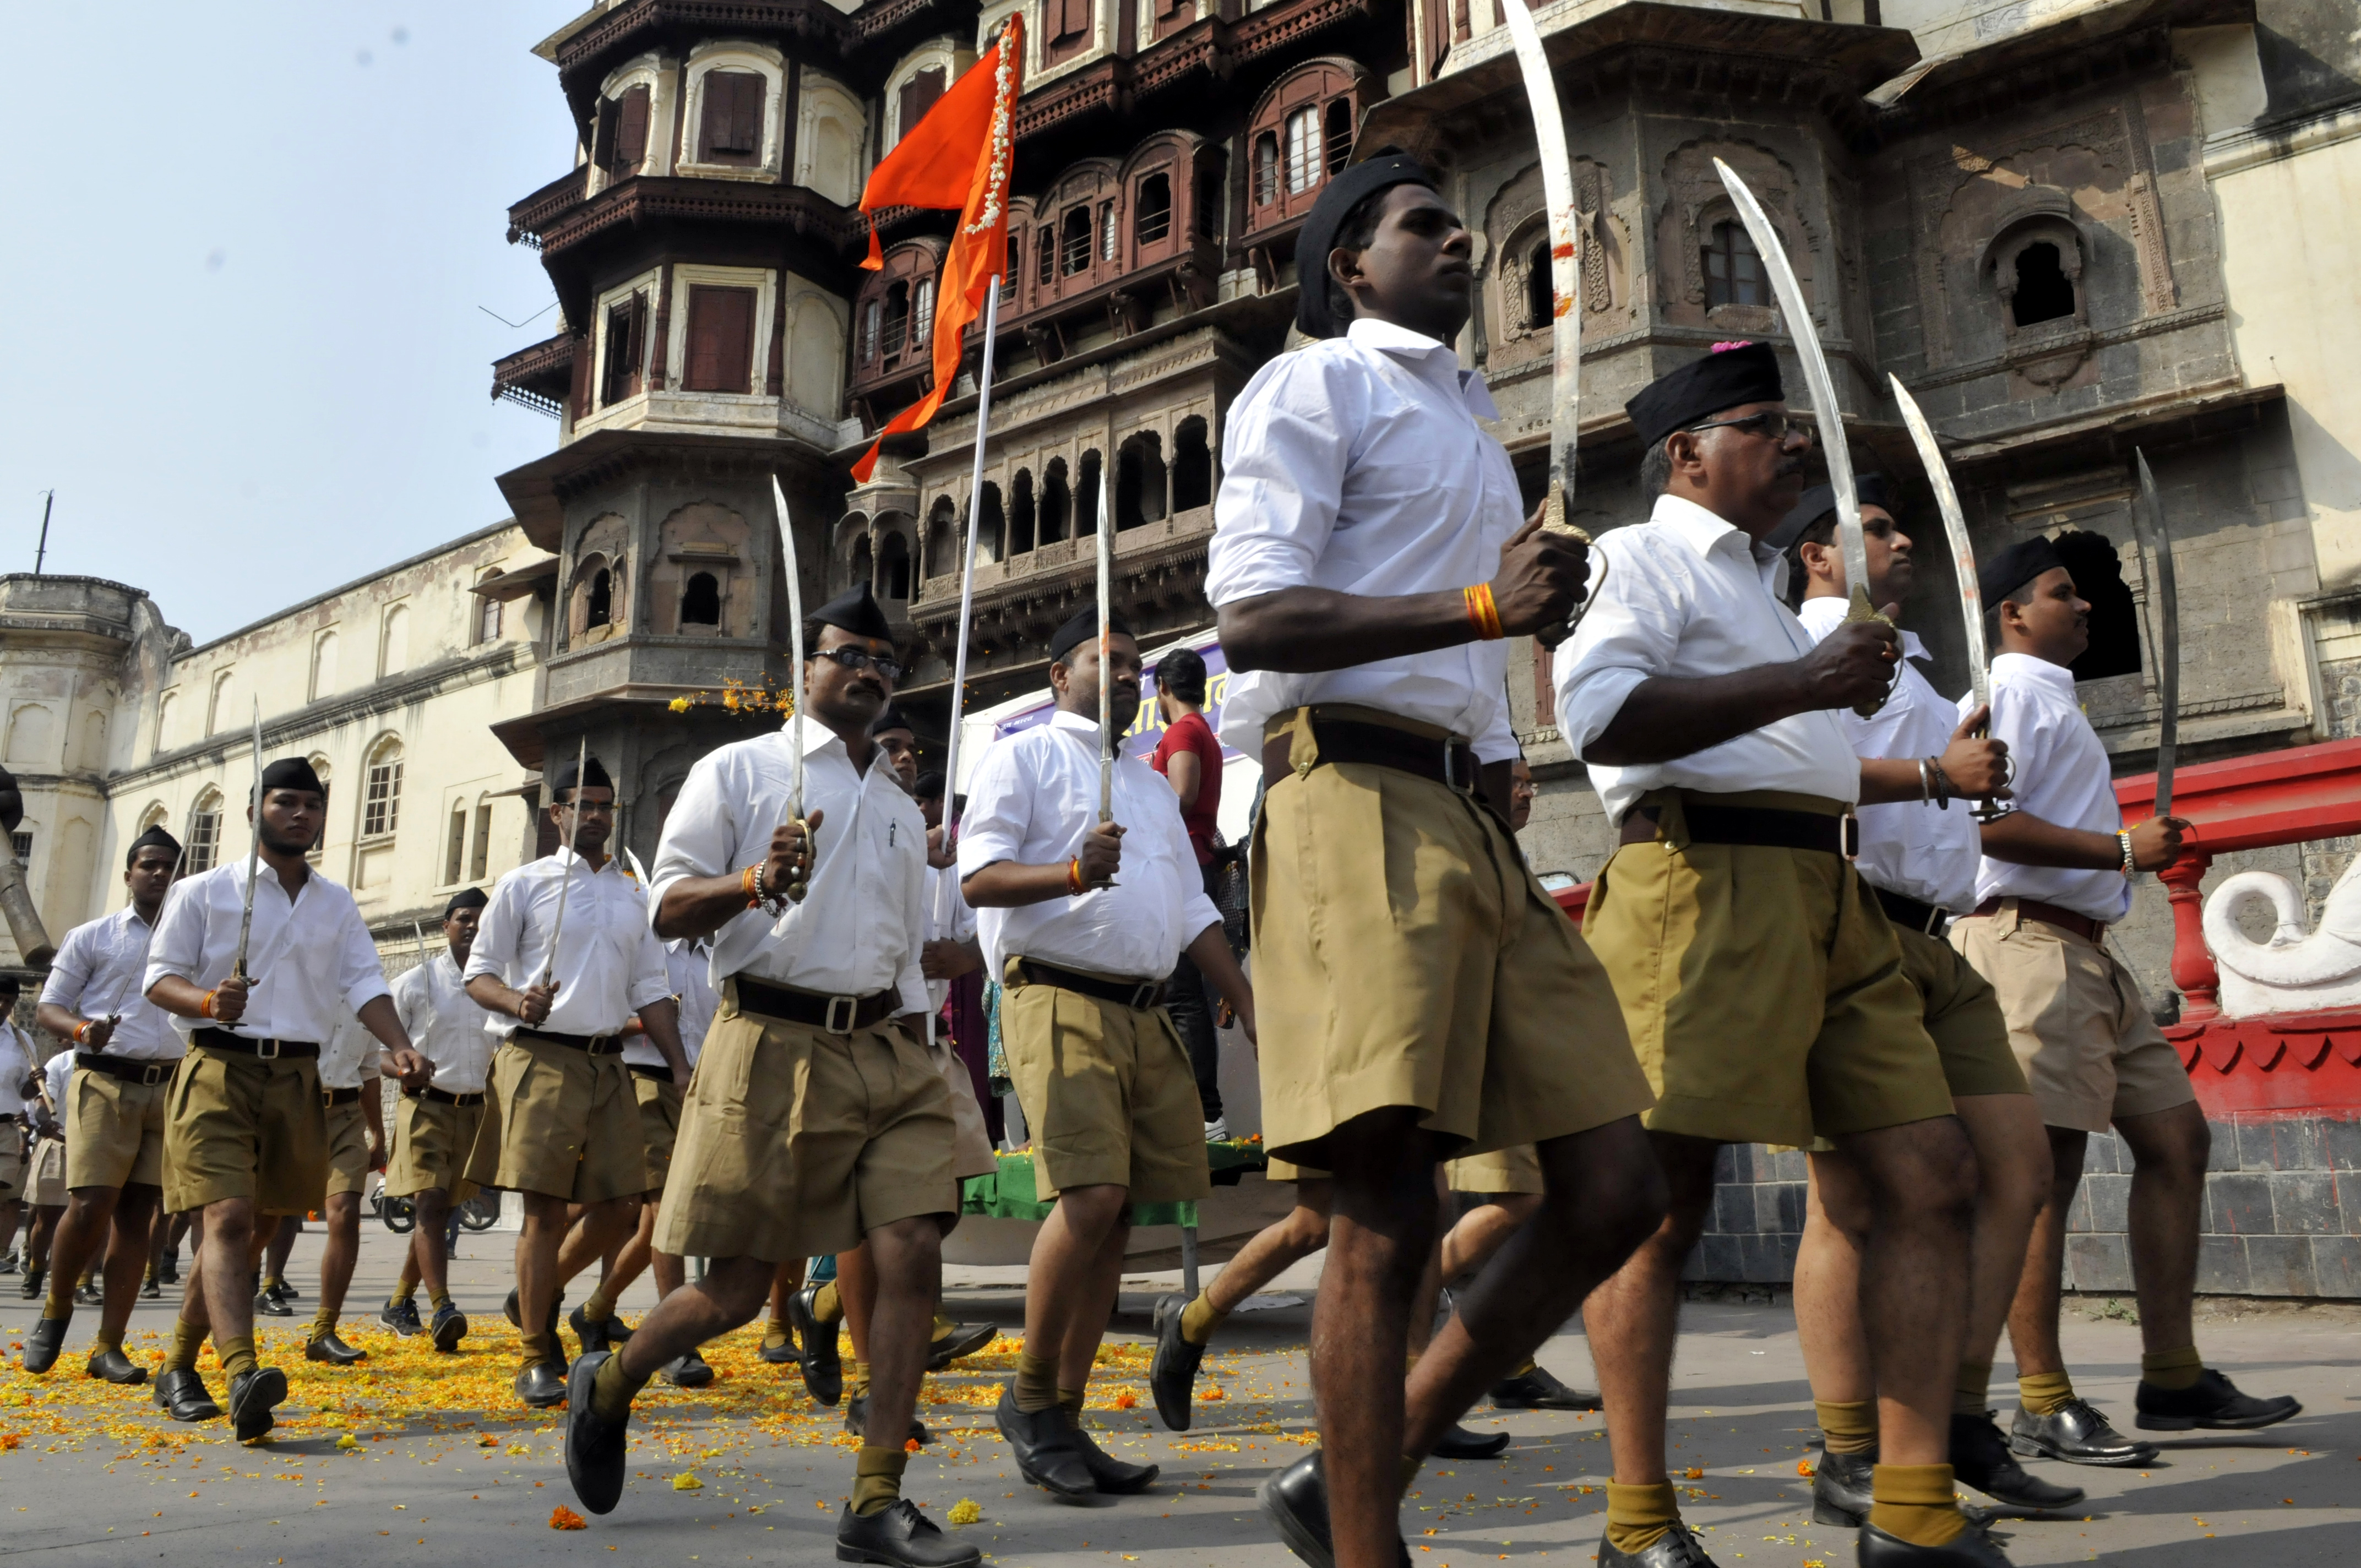 RSS volunteers queue up for an annual march at Jehangirabad area in Indore, India, on Oct. 22, 2015